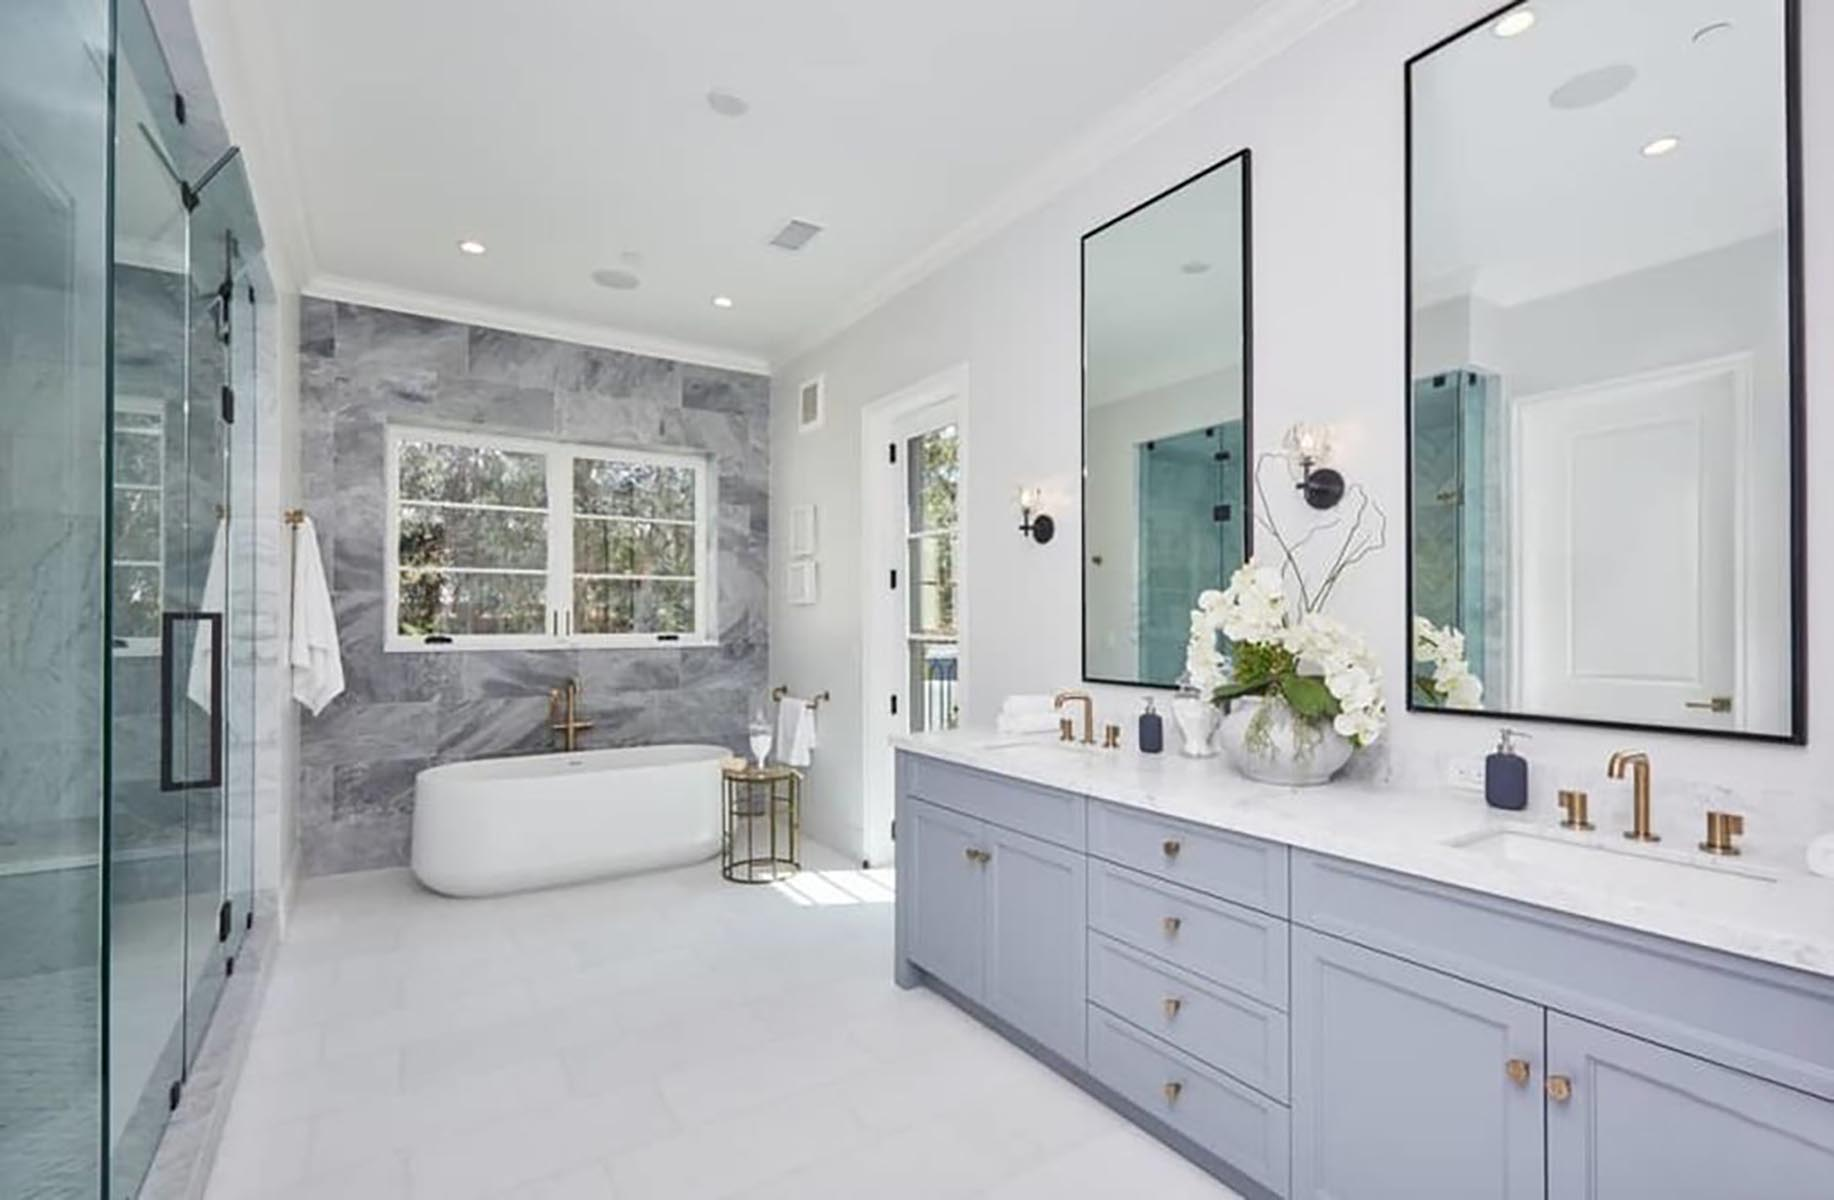 Architect home addition and remodel French contemporary style master bathroom 2